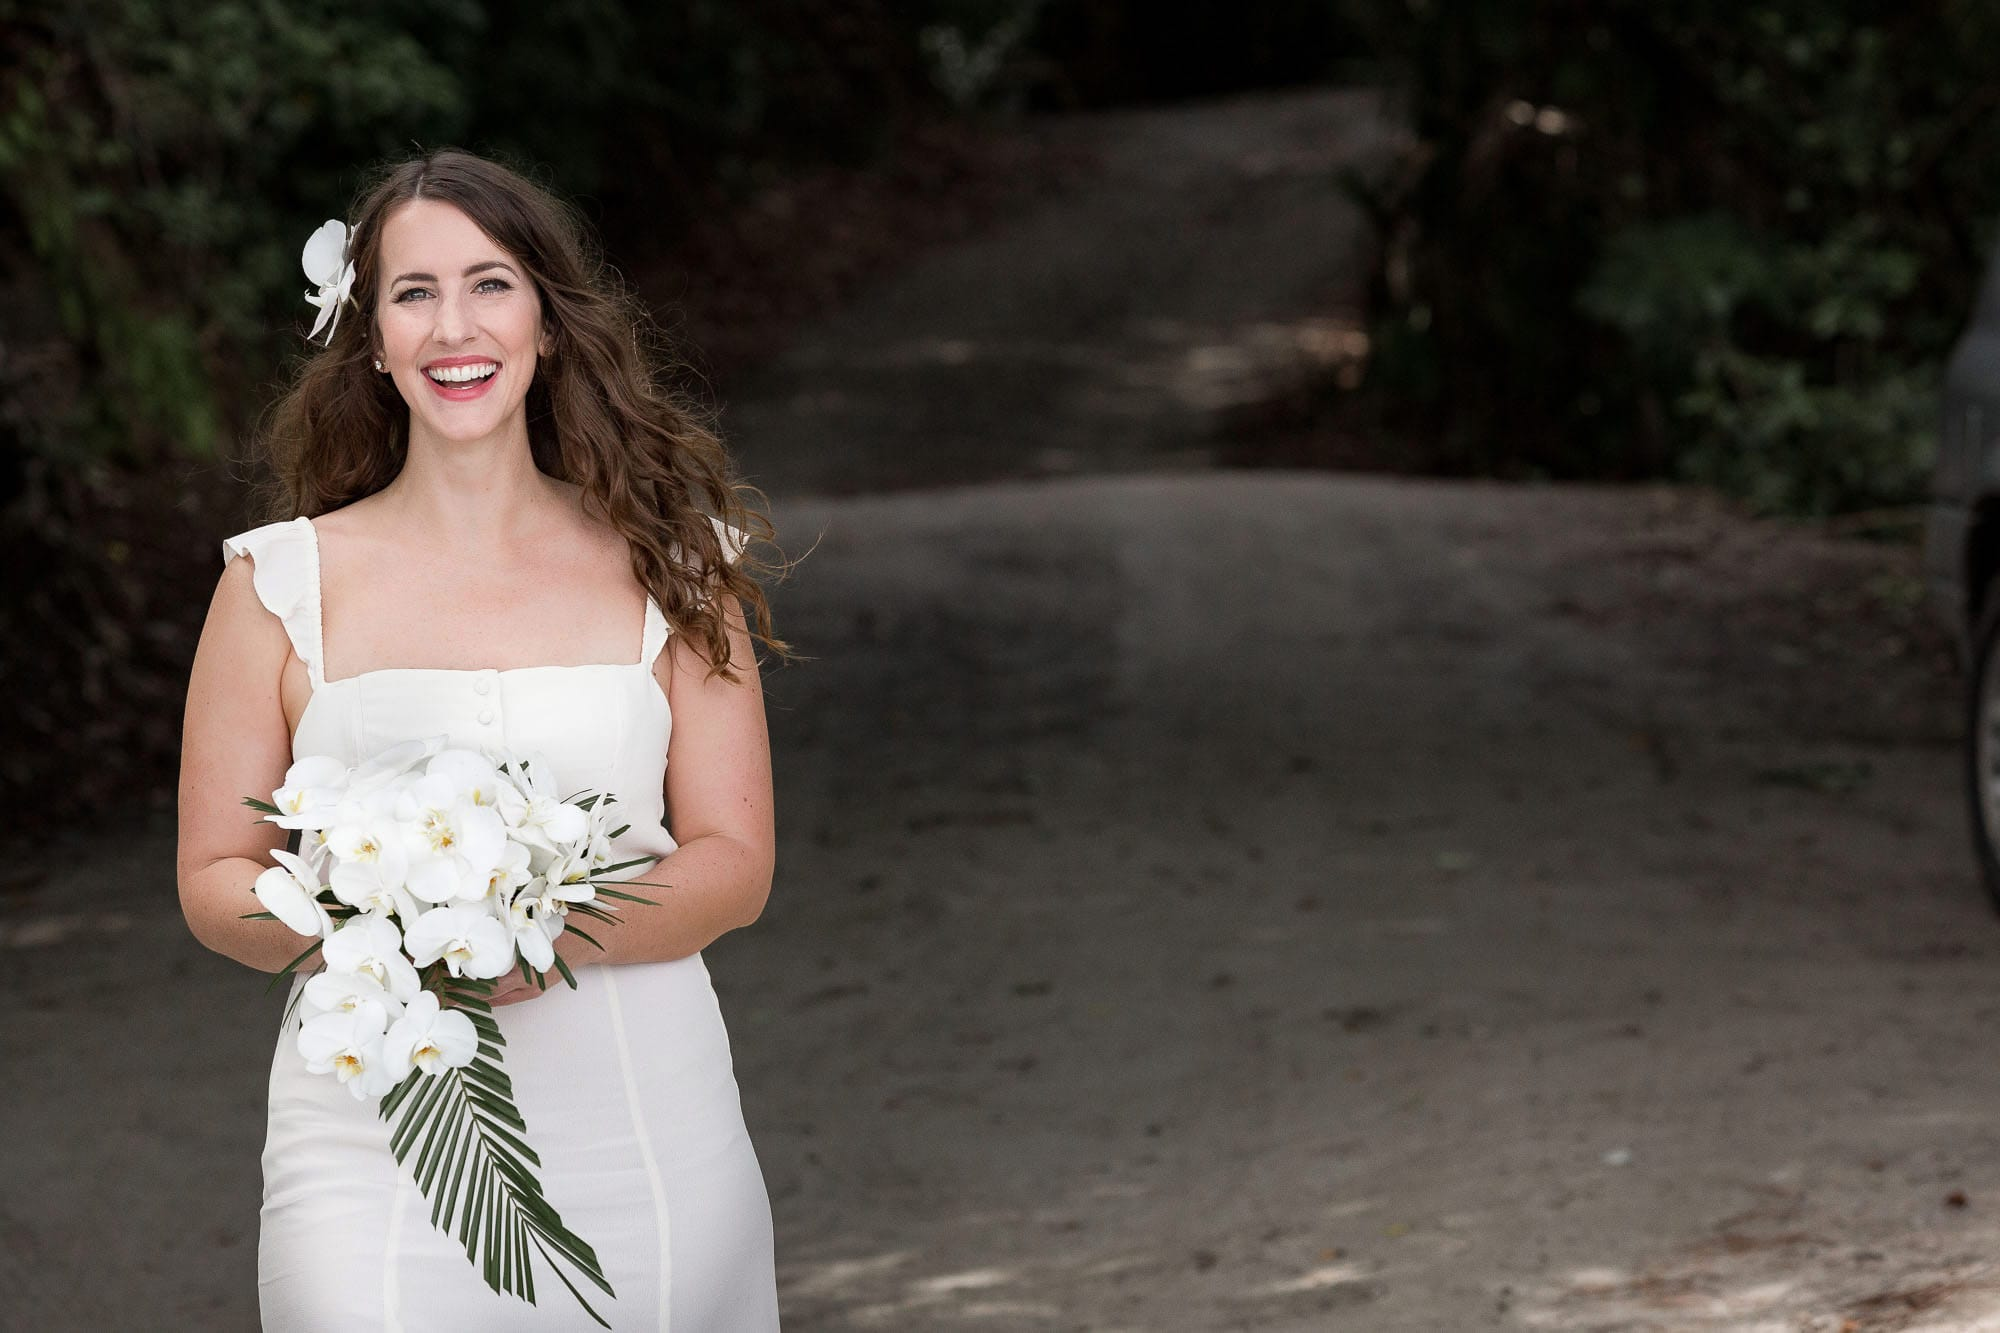 Happy bride in one of the best places to elope on earth!